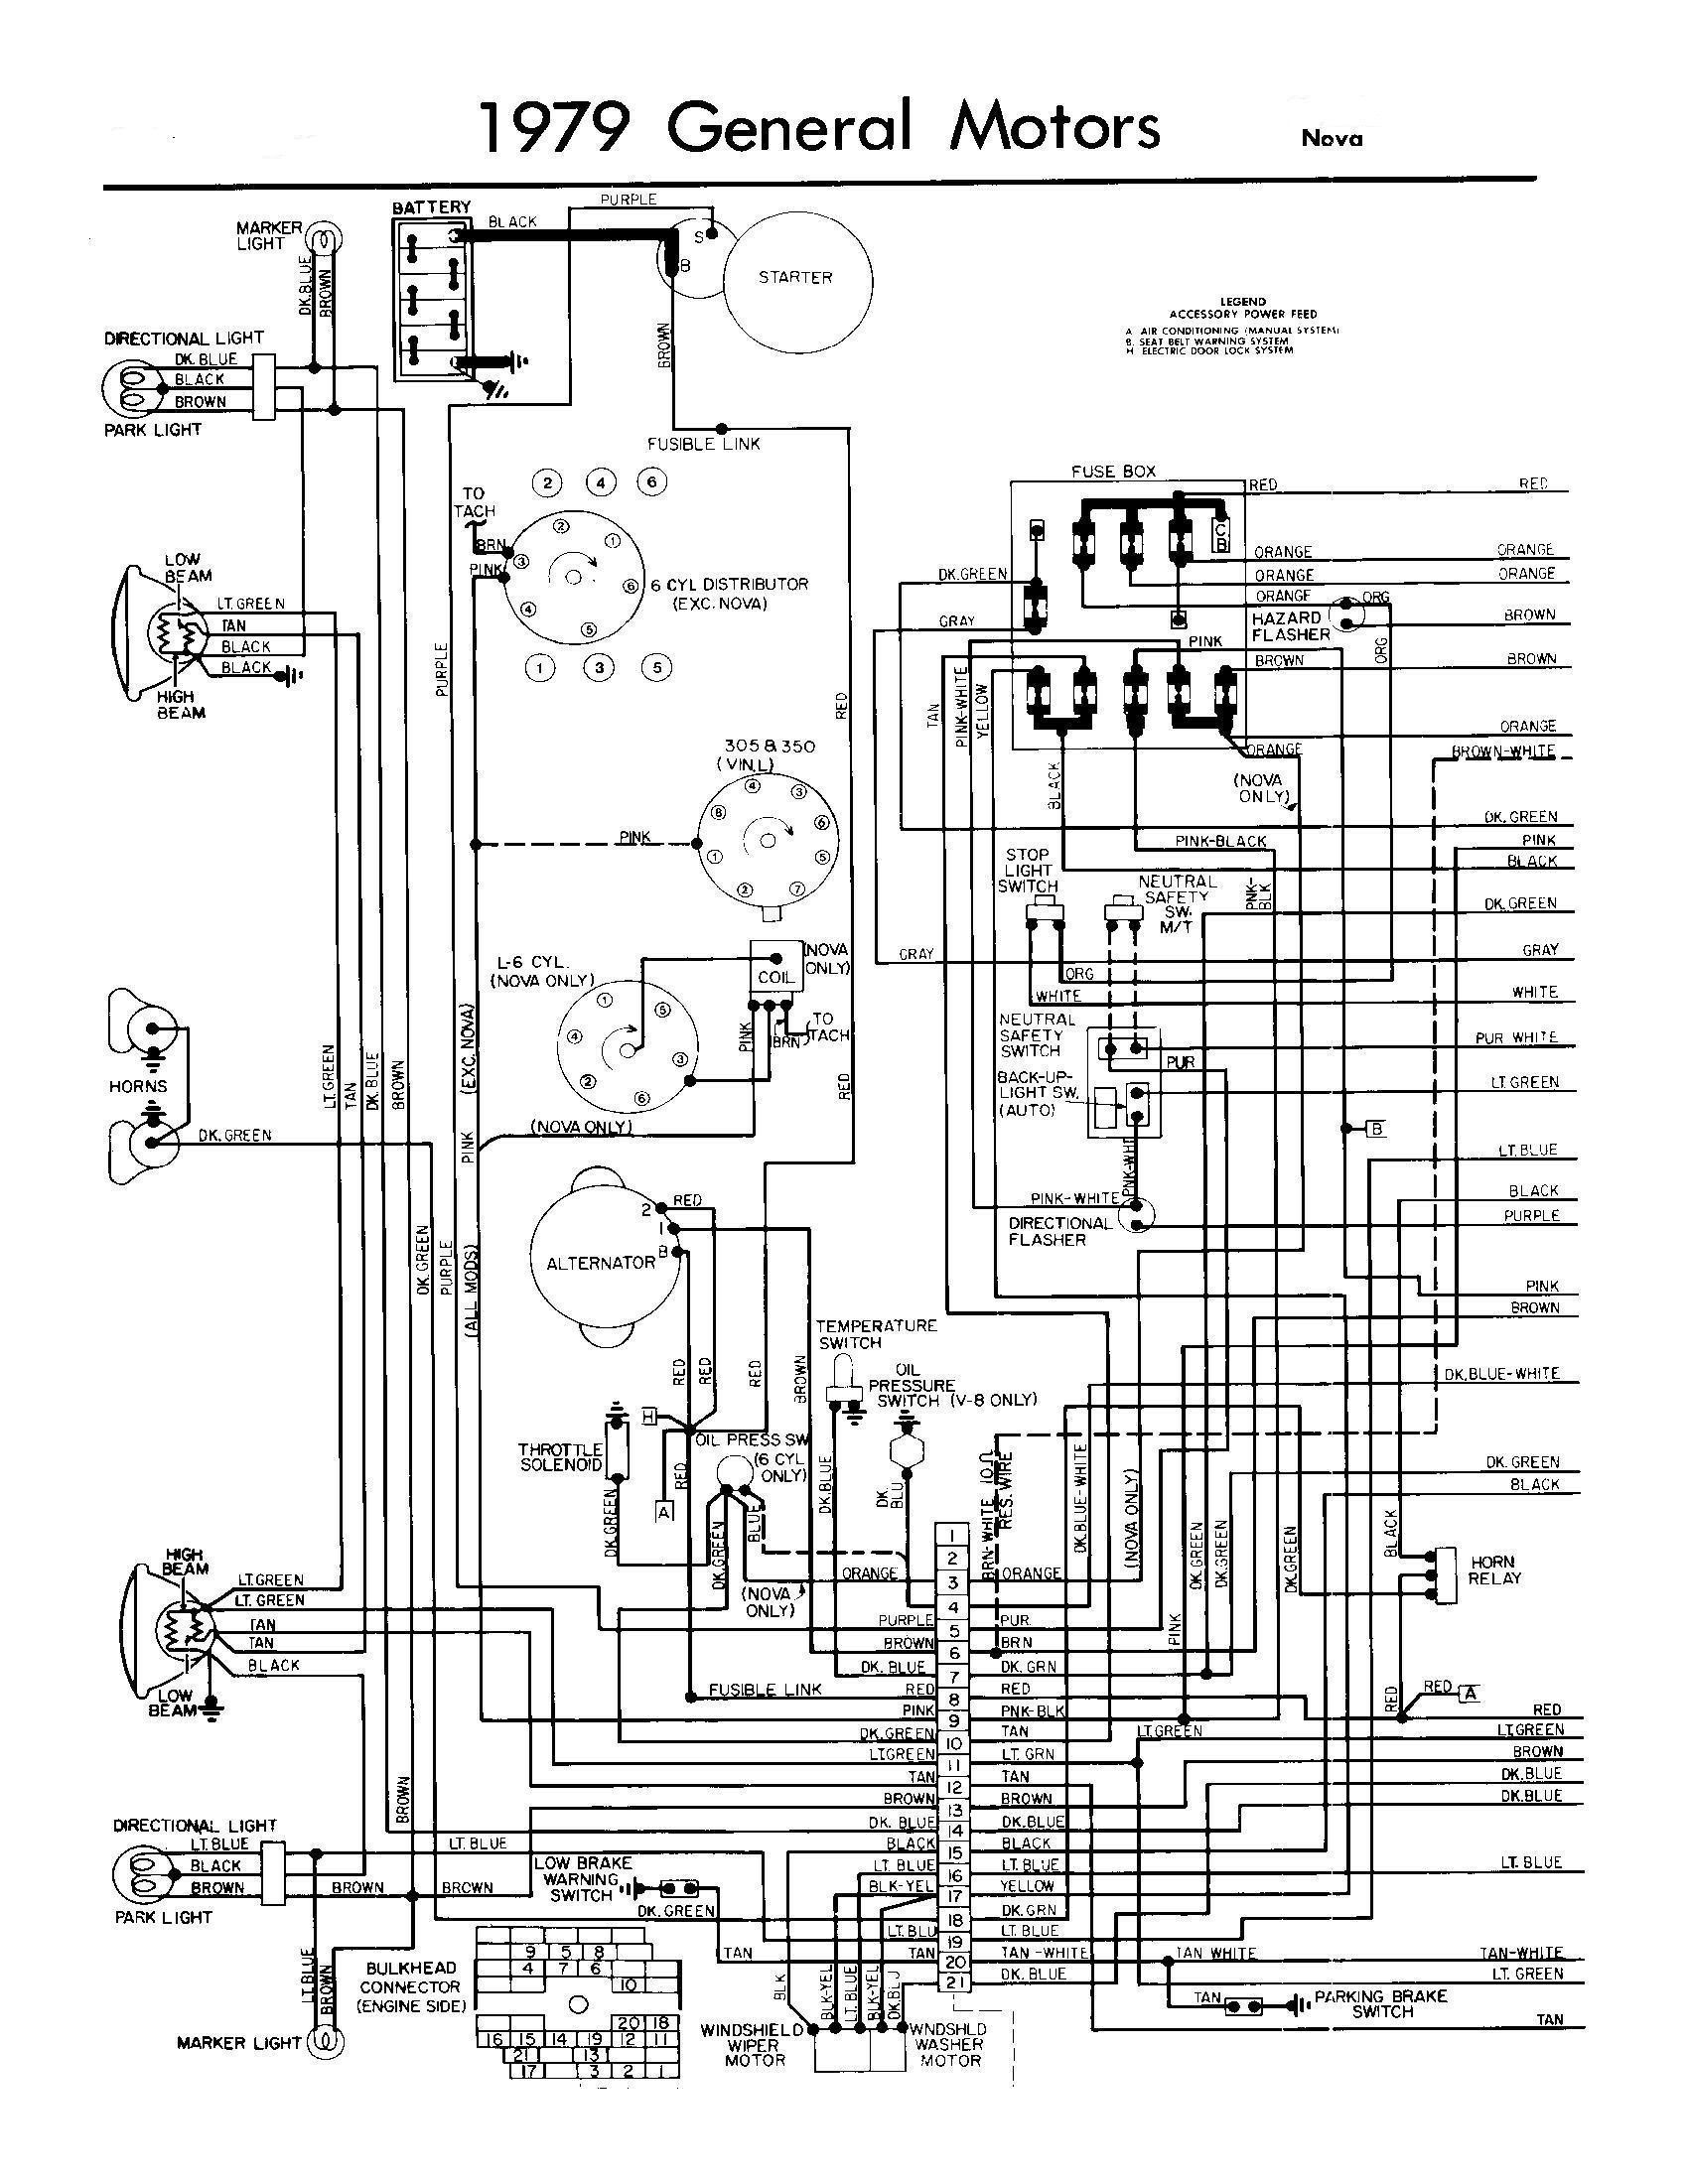 Computer Wiring Diagram Gmg Body Not Lossing For Dell Power Supply Diagrams Rh 15 Shareplm De